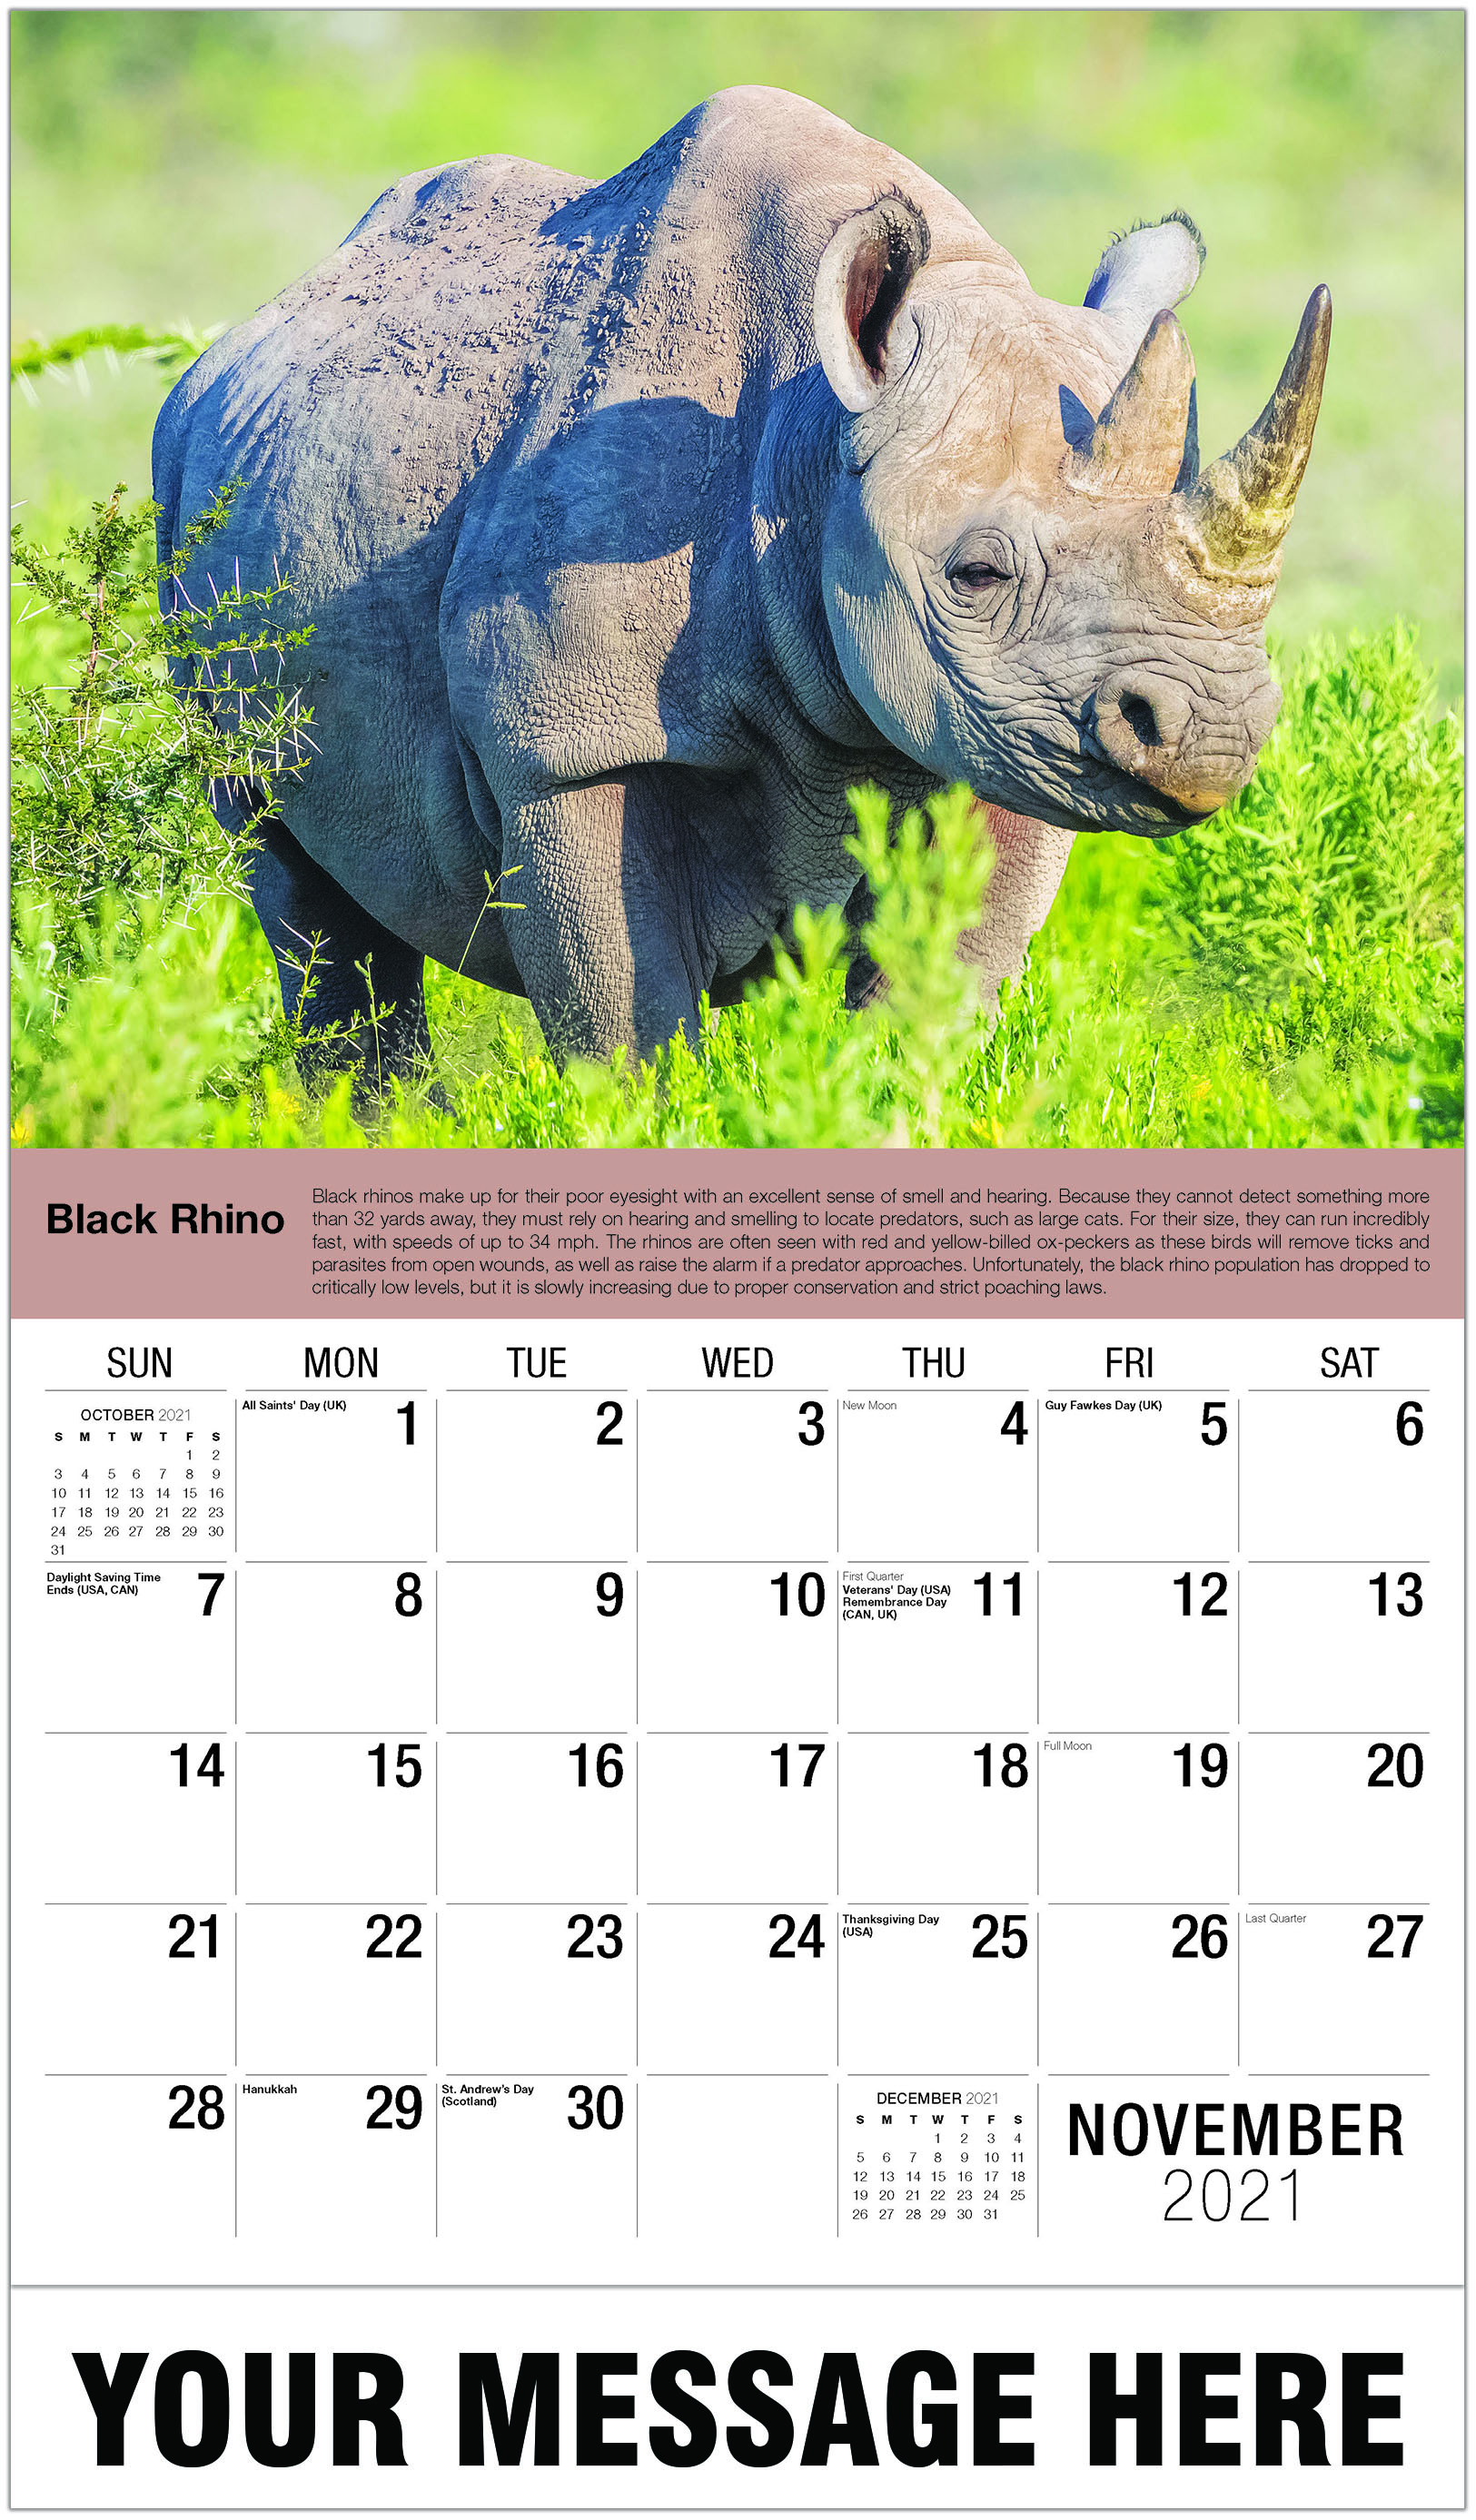 Black Rhino - November - International Wildlife 2021 Promotional Calendar